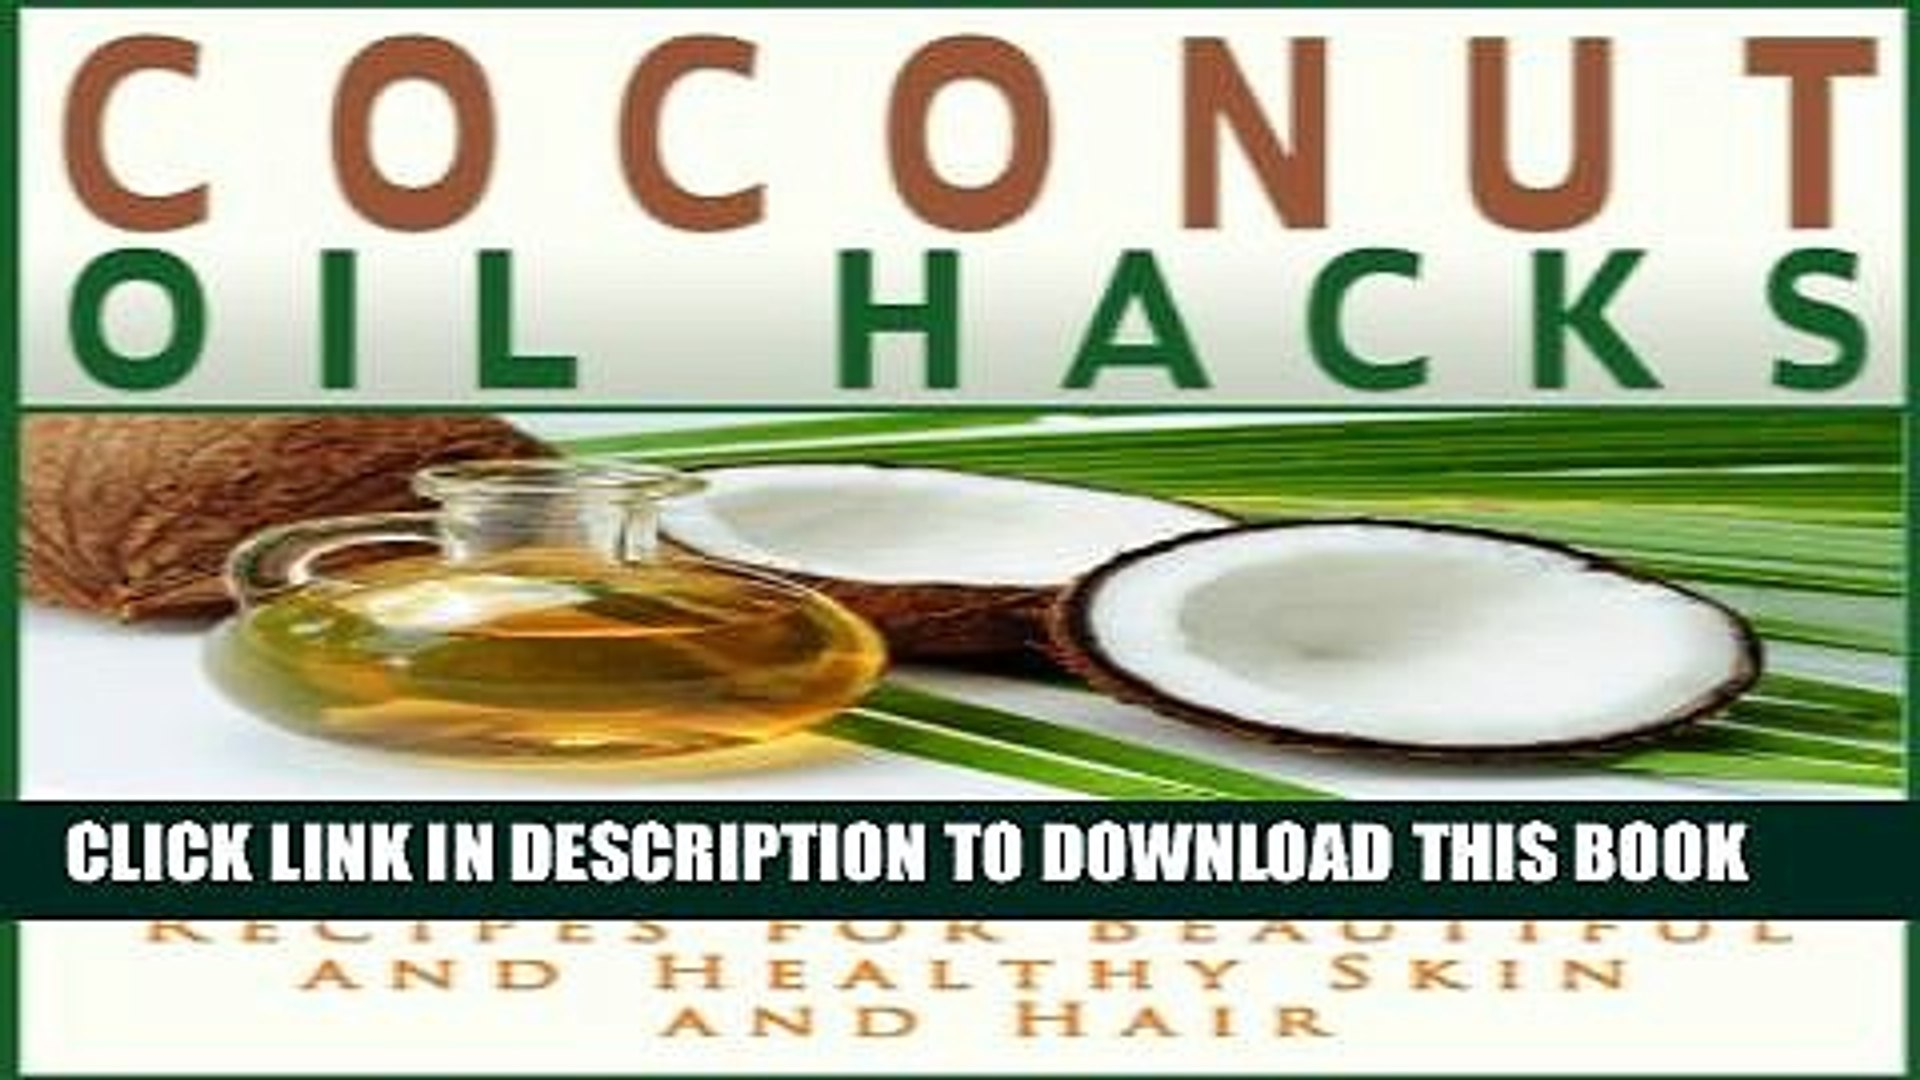 [PDF] Coconut Oil Hacks: Secret Recipes for Beautiful and Healthy Skin and Hair (Coconut Oil